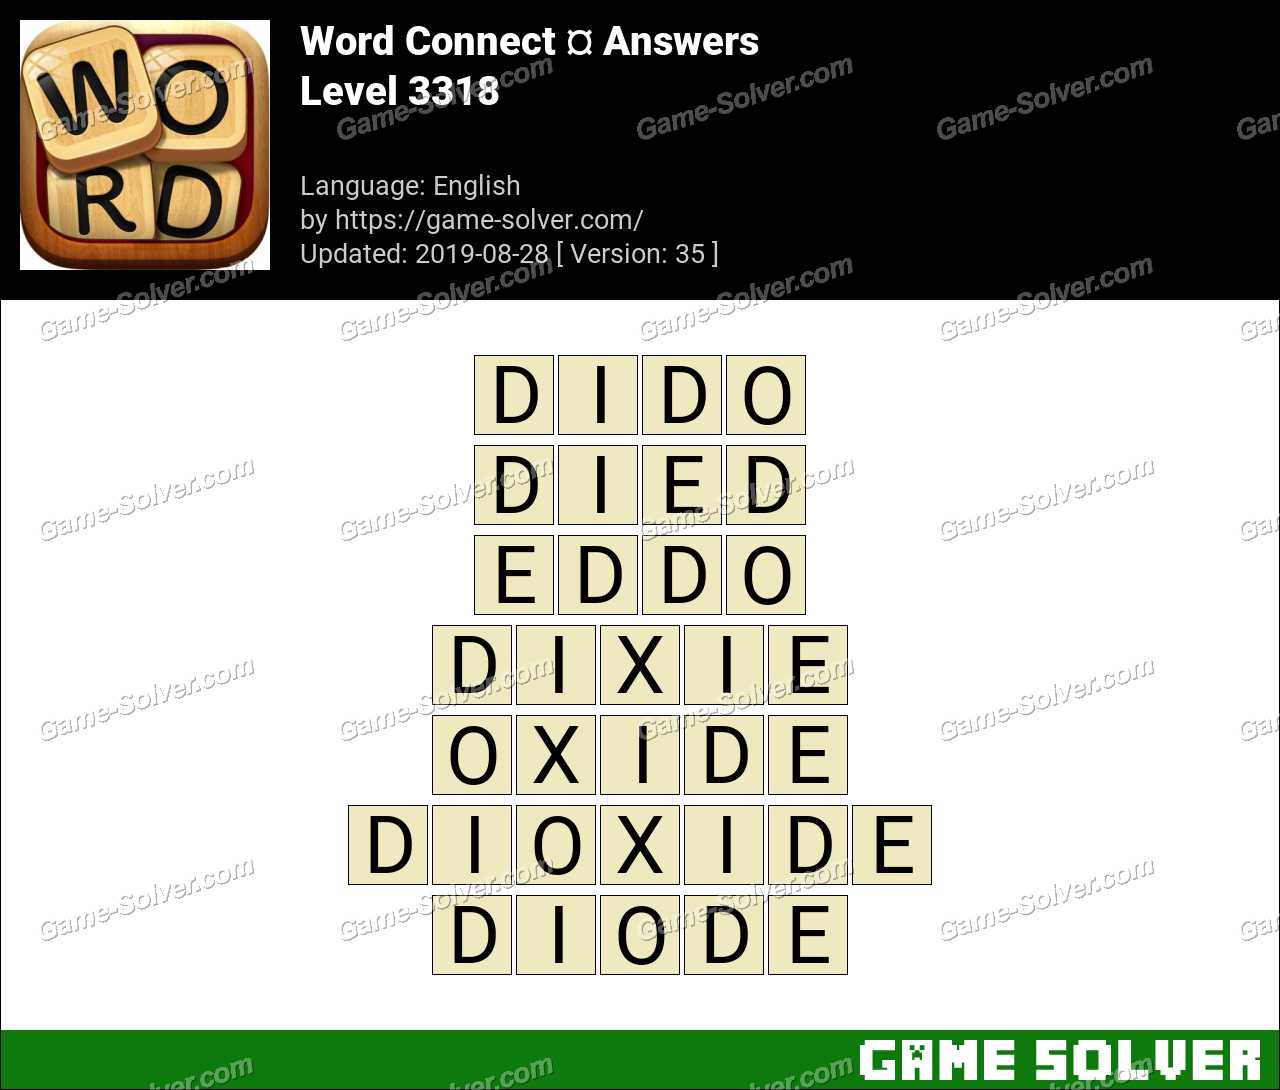 Word Connect Level 3318 Answers